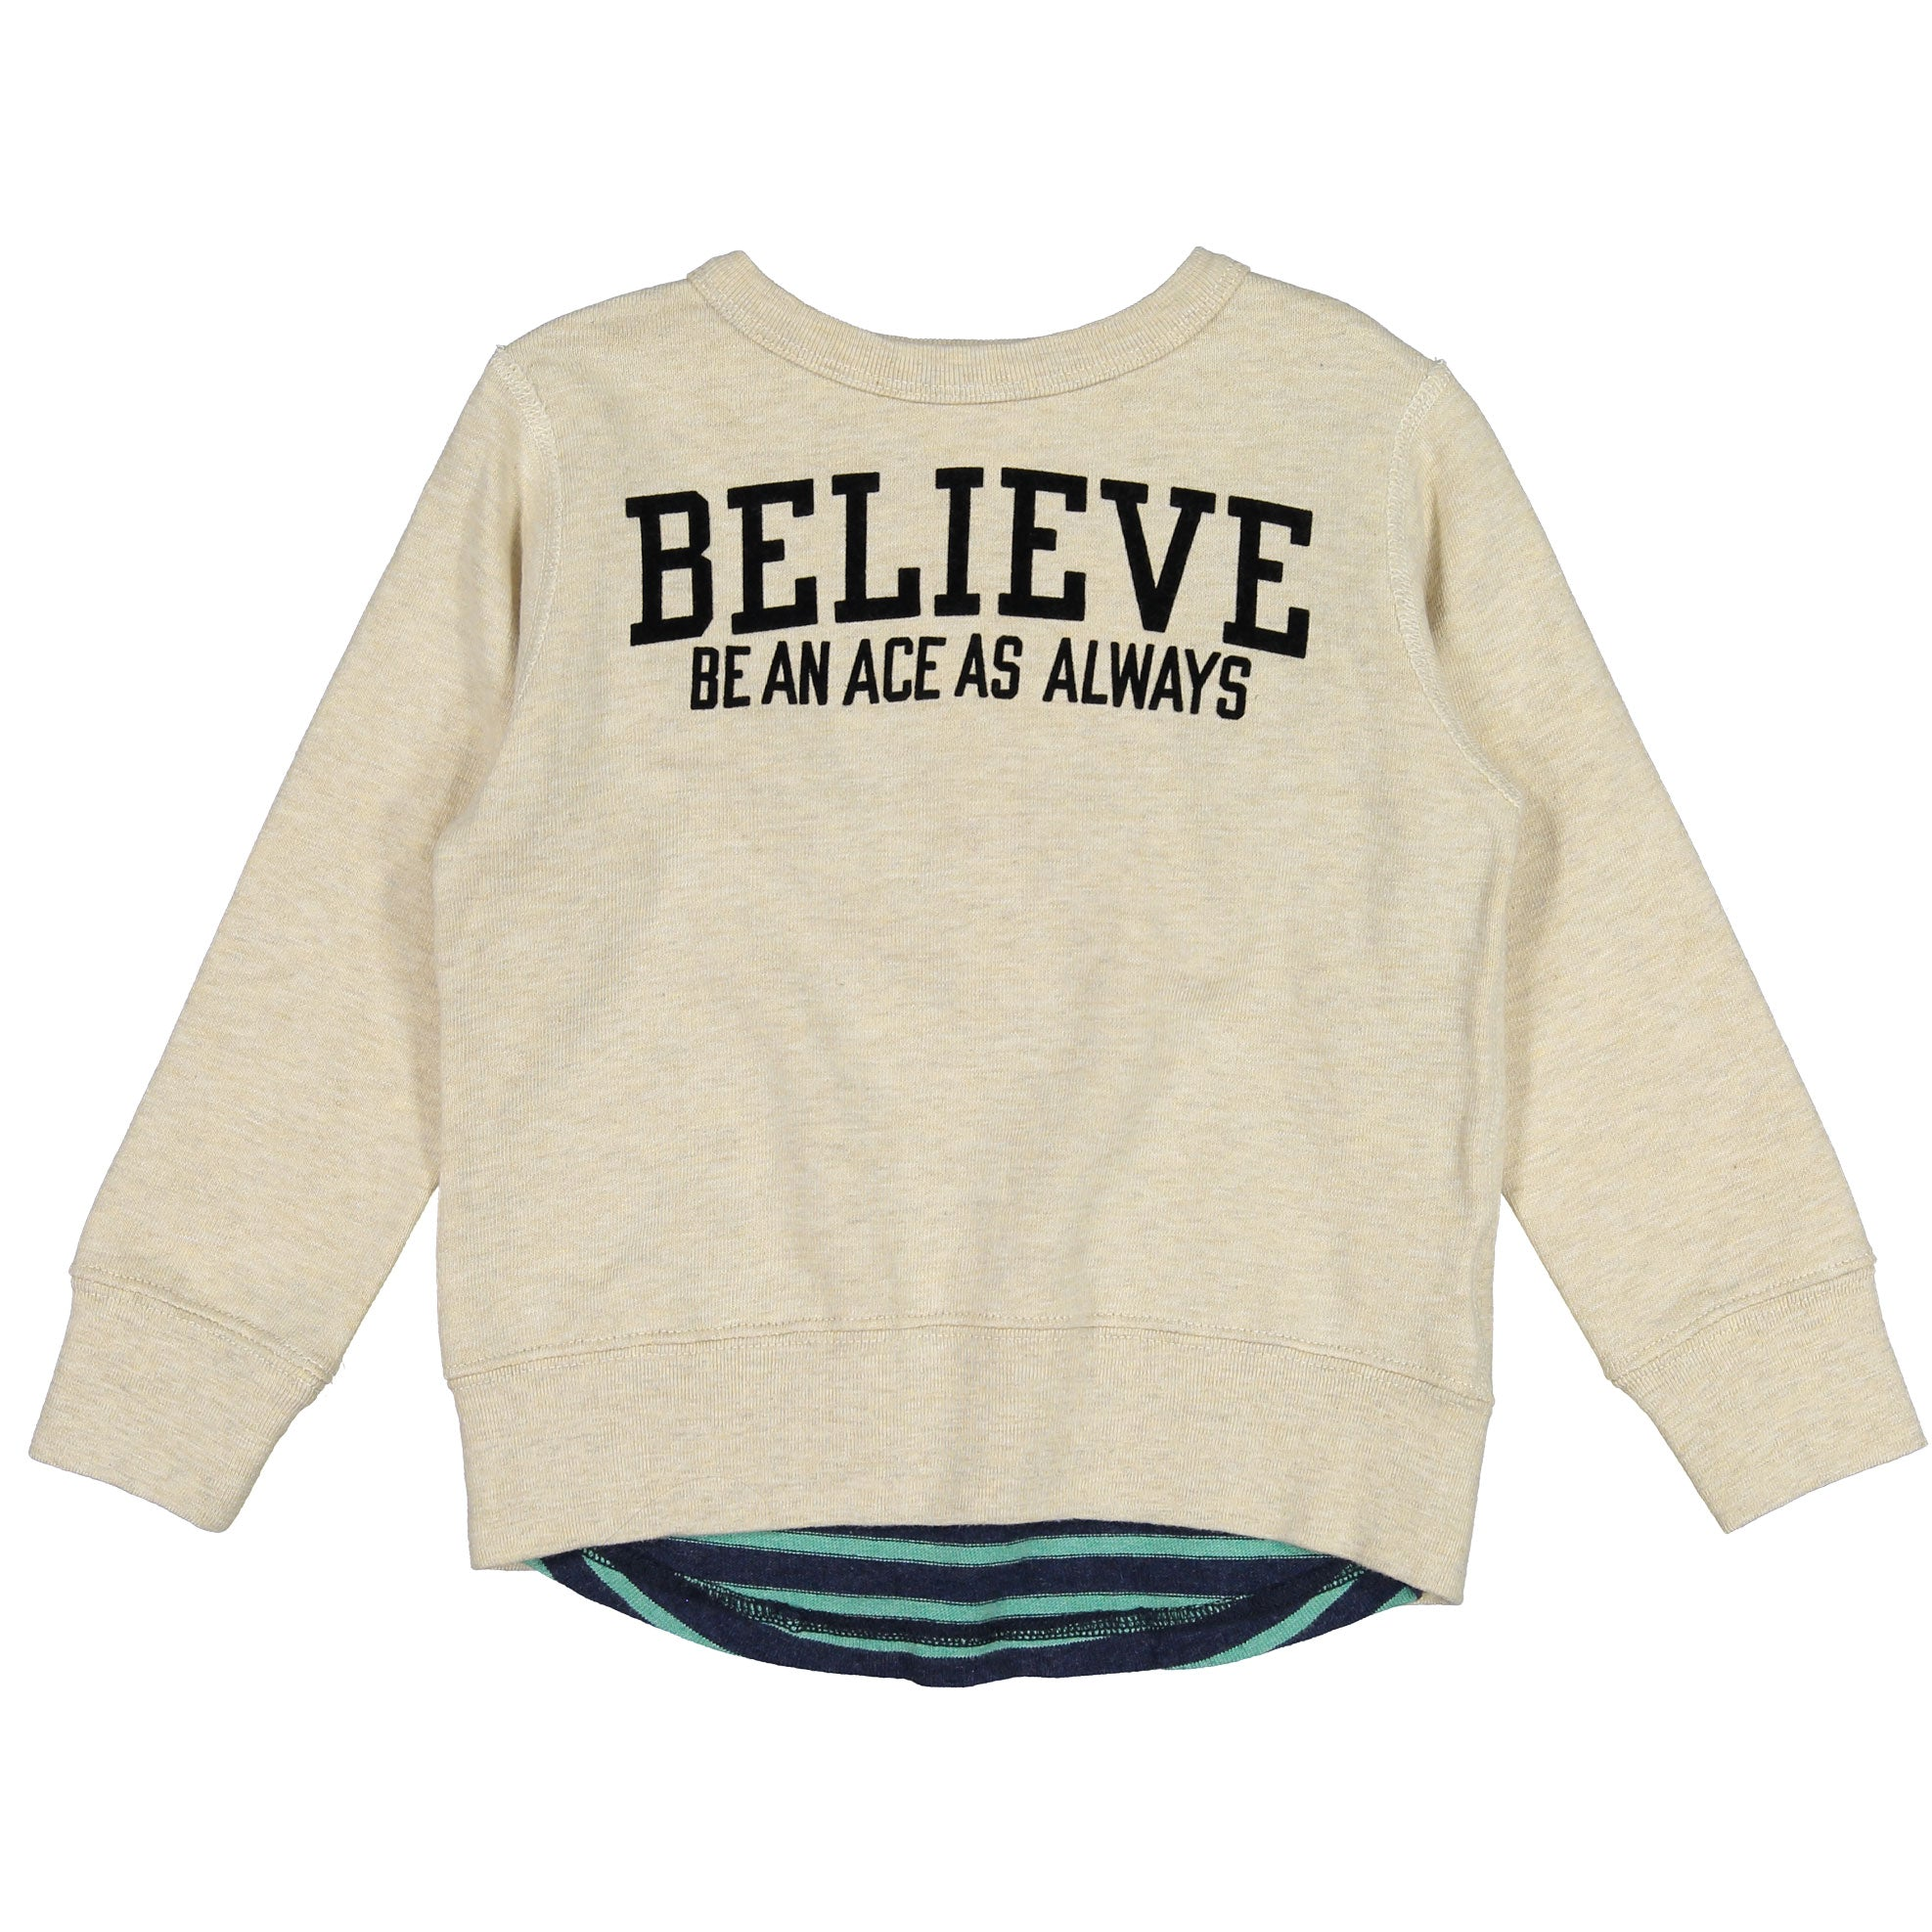 DENIM DUNGAREE Oatmeal Believe Sweatshirt